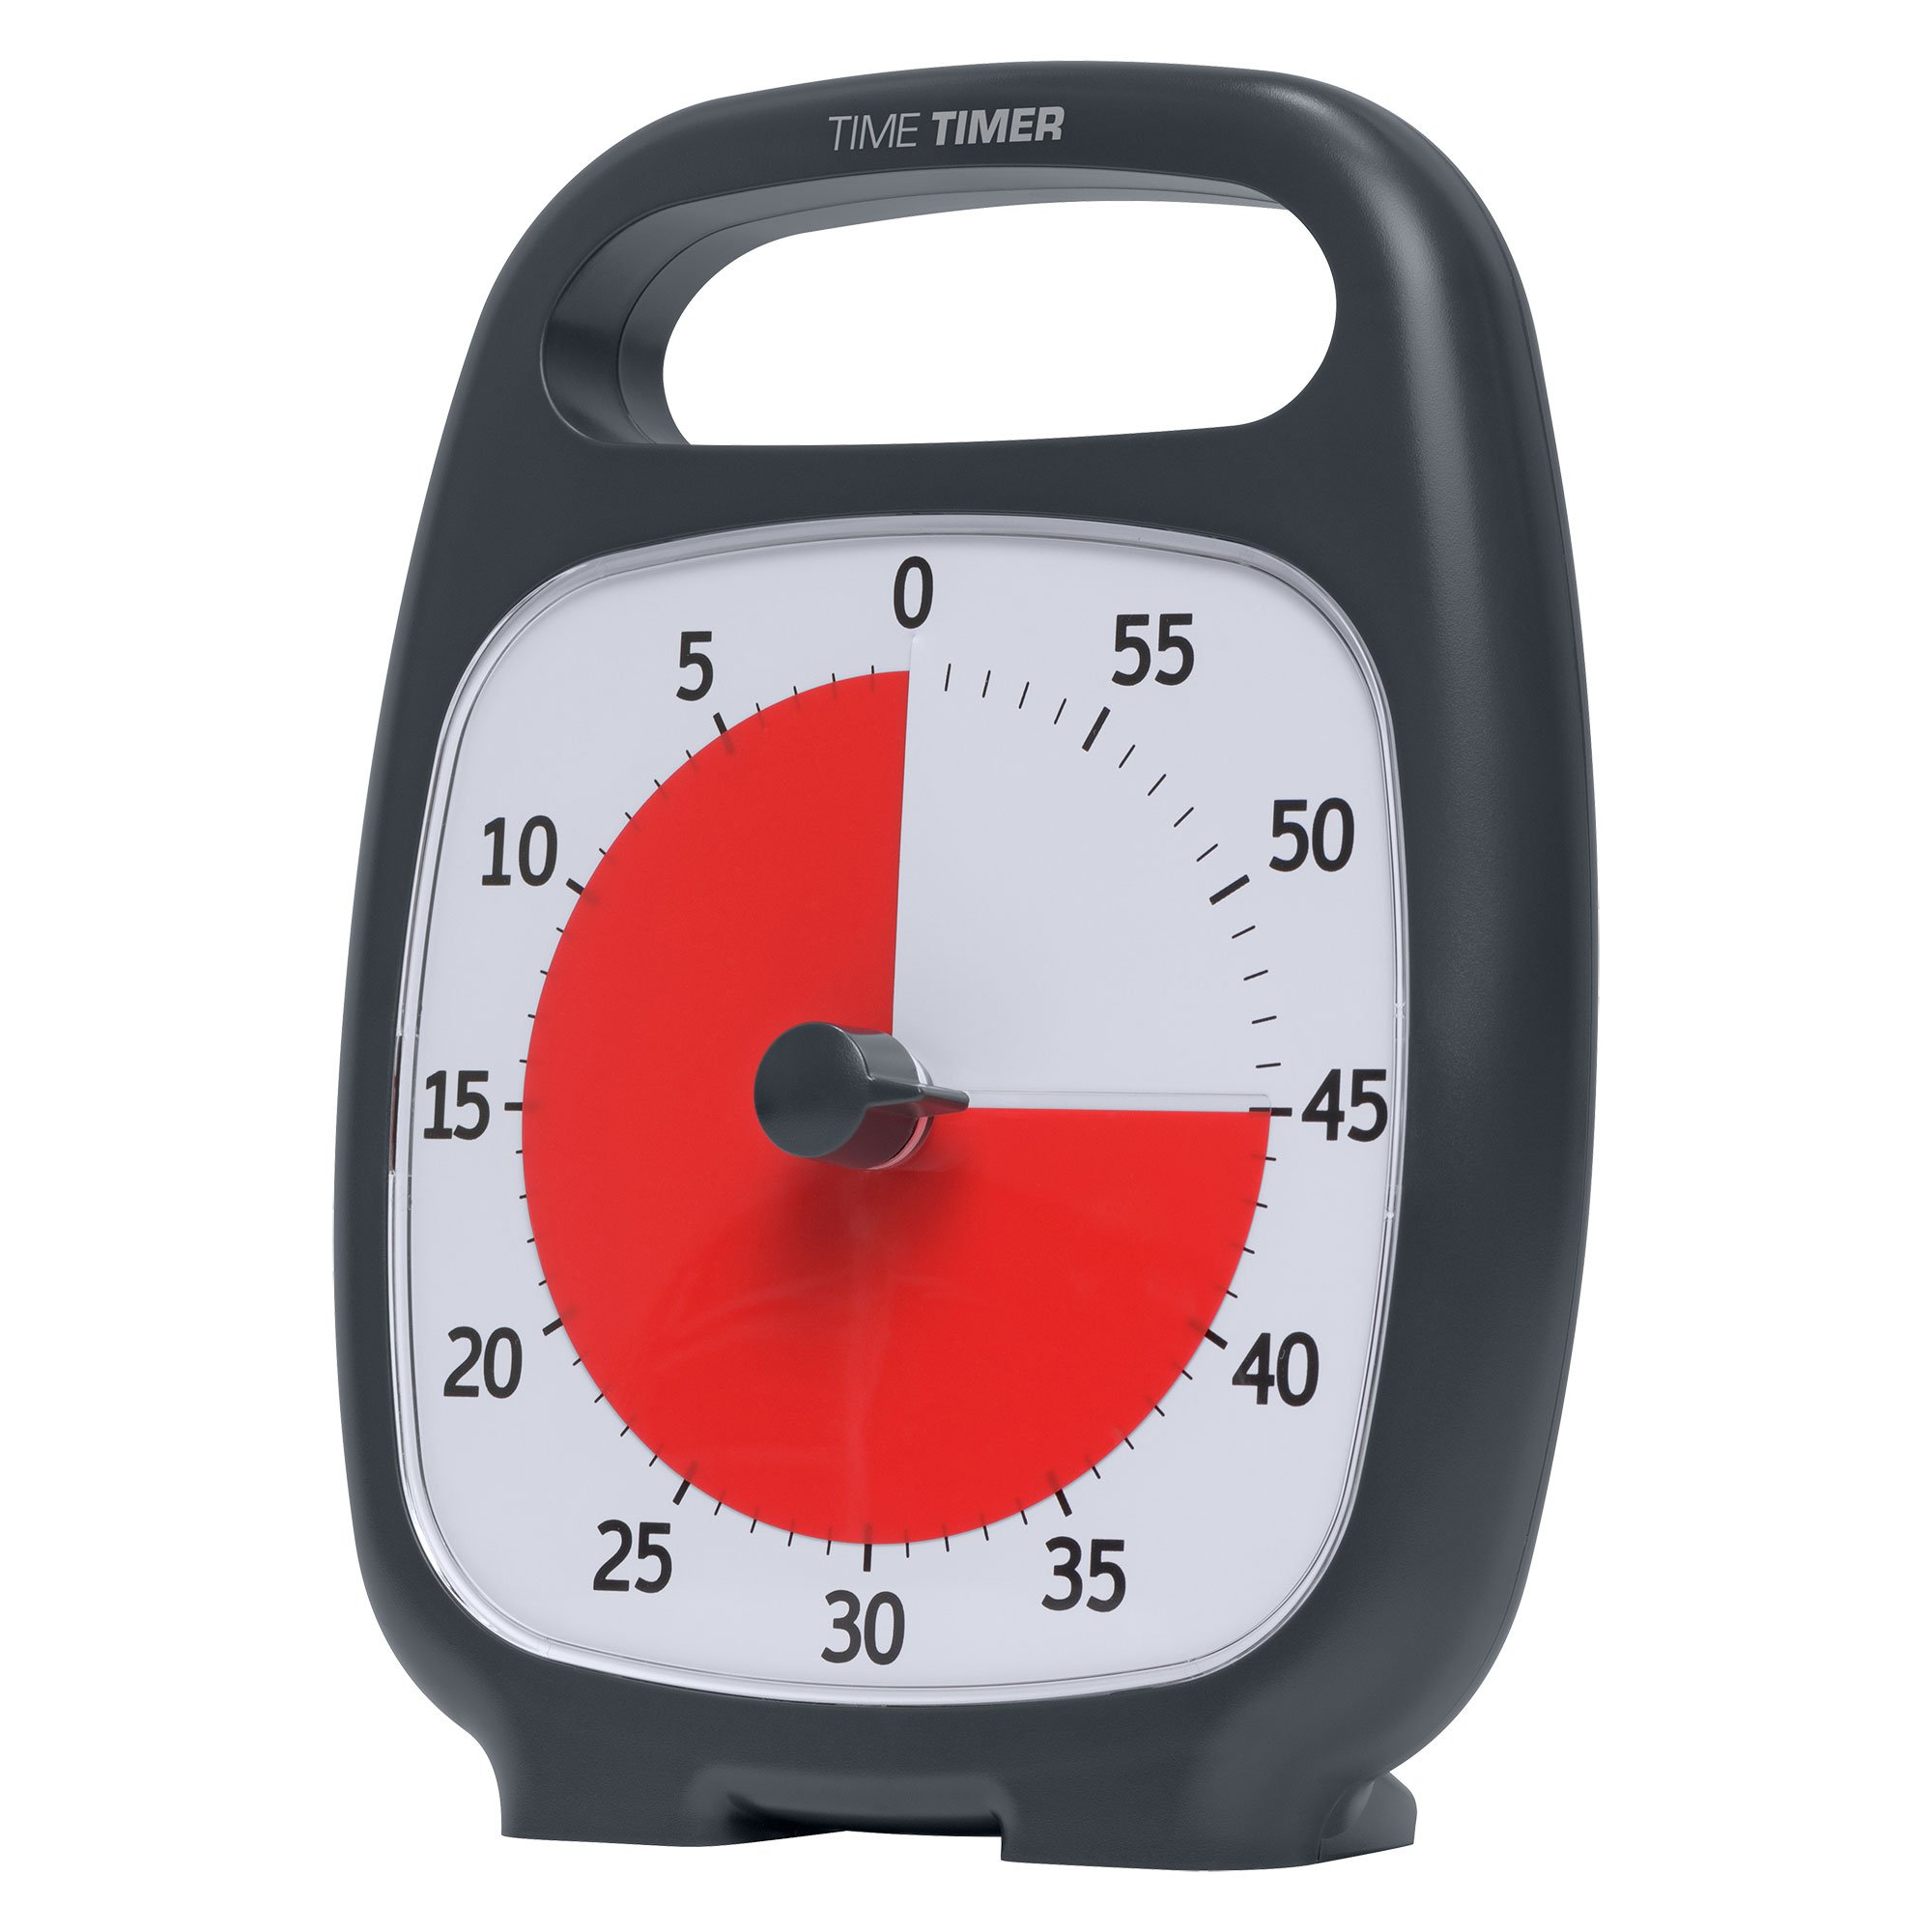 """Time Timer TTP7-W TTP7-W Plus 60 Minute Visual Analog Timer; Optional Alert (Volume-Control Dial); Silent Operation (No Ticking); 5.5"""" Wide x 7"""" Tall; Time Management Tool; Charcoal by Time Timer (Image #12)"""